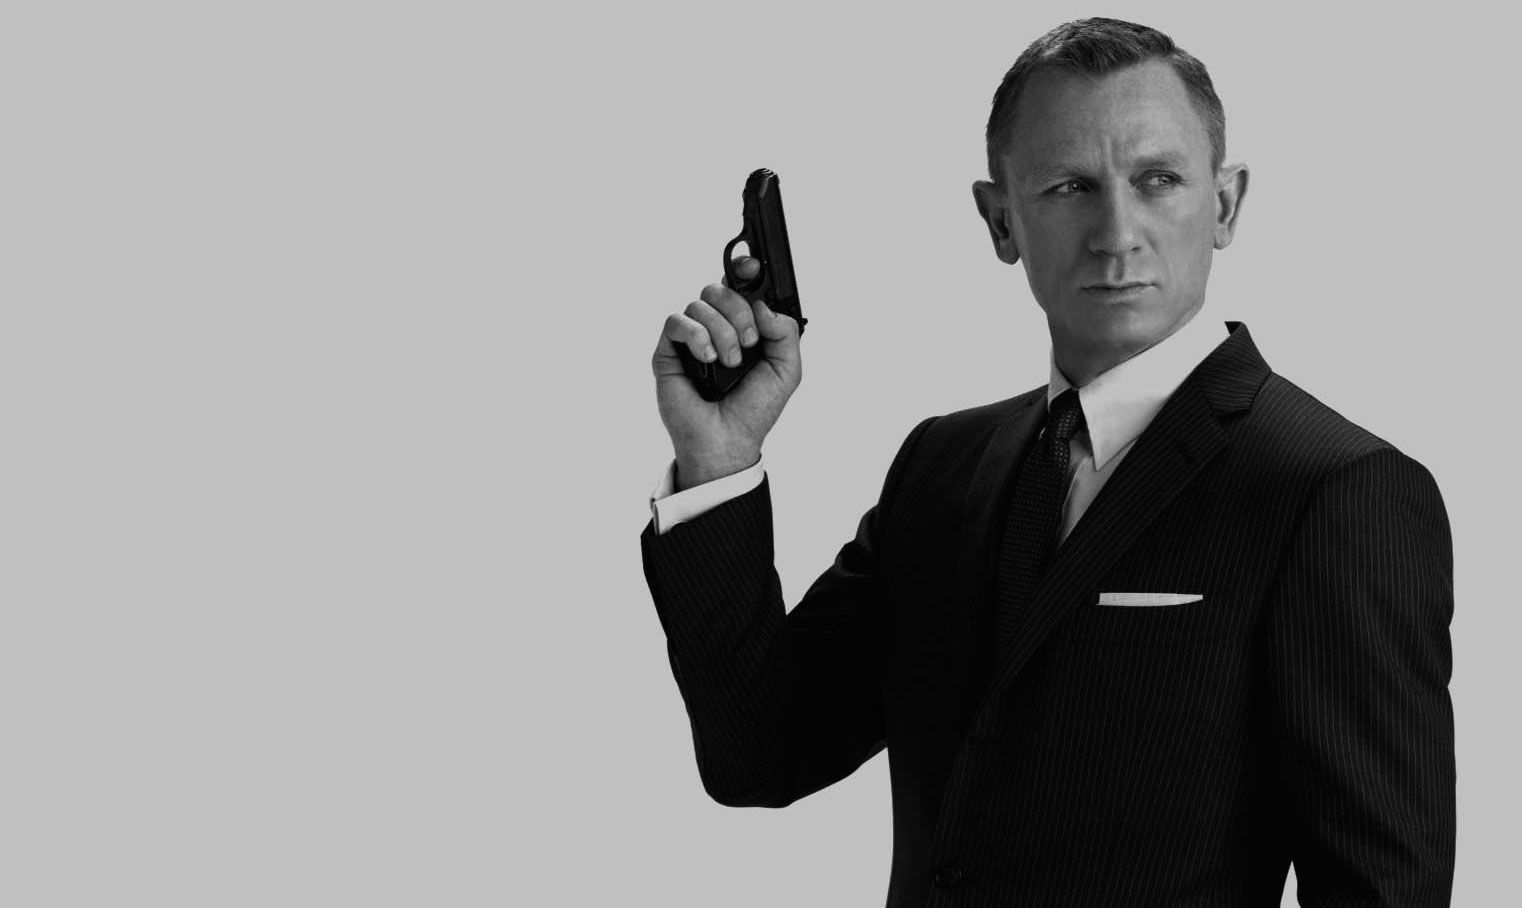 Watch: Daniel Craig Confirms He's Returning As James Bond for the Fifth Time